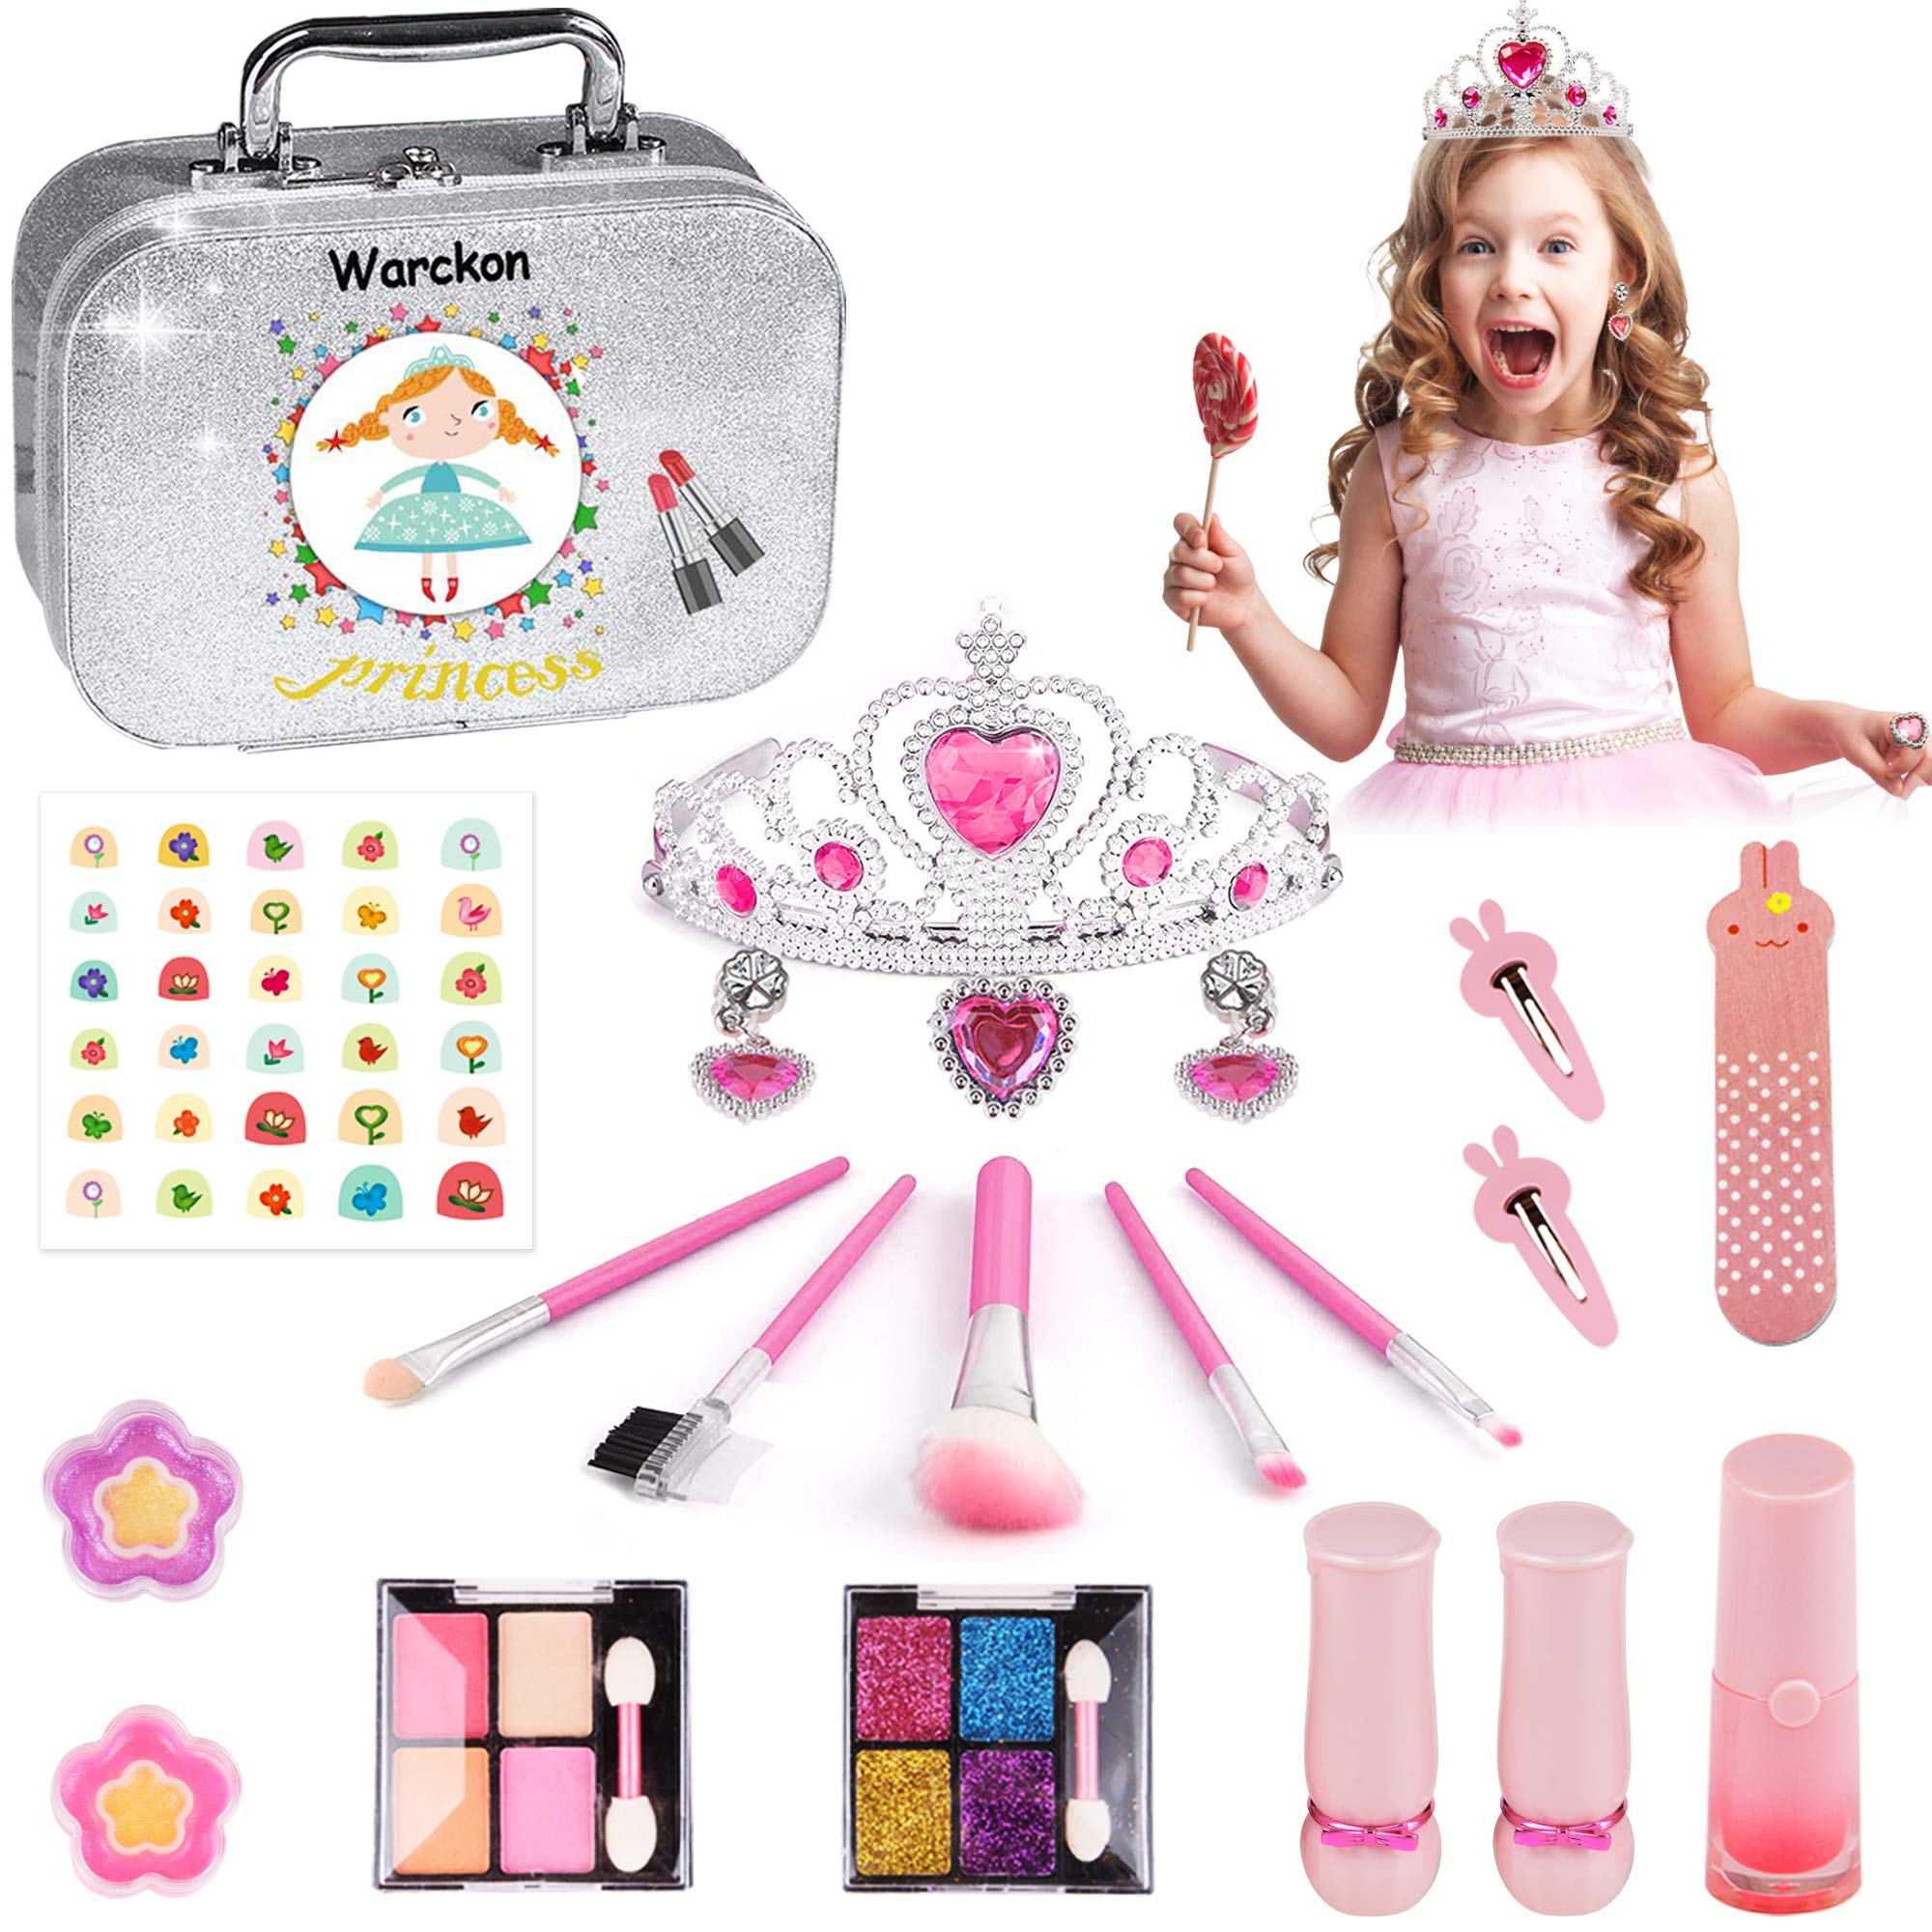 Rawskro Kids Makeup Kit for GirlsReal Washable Makeup Set Toys with Princess